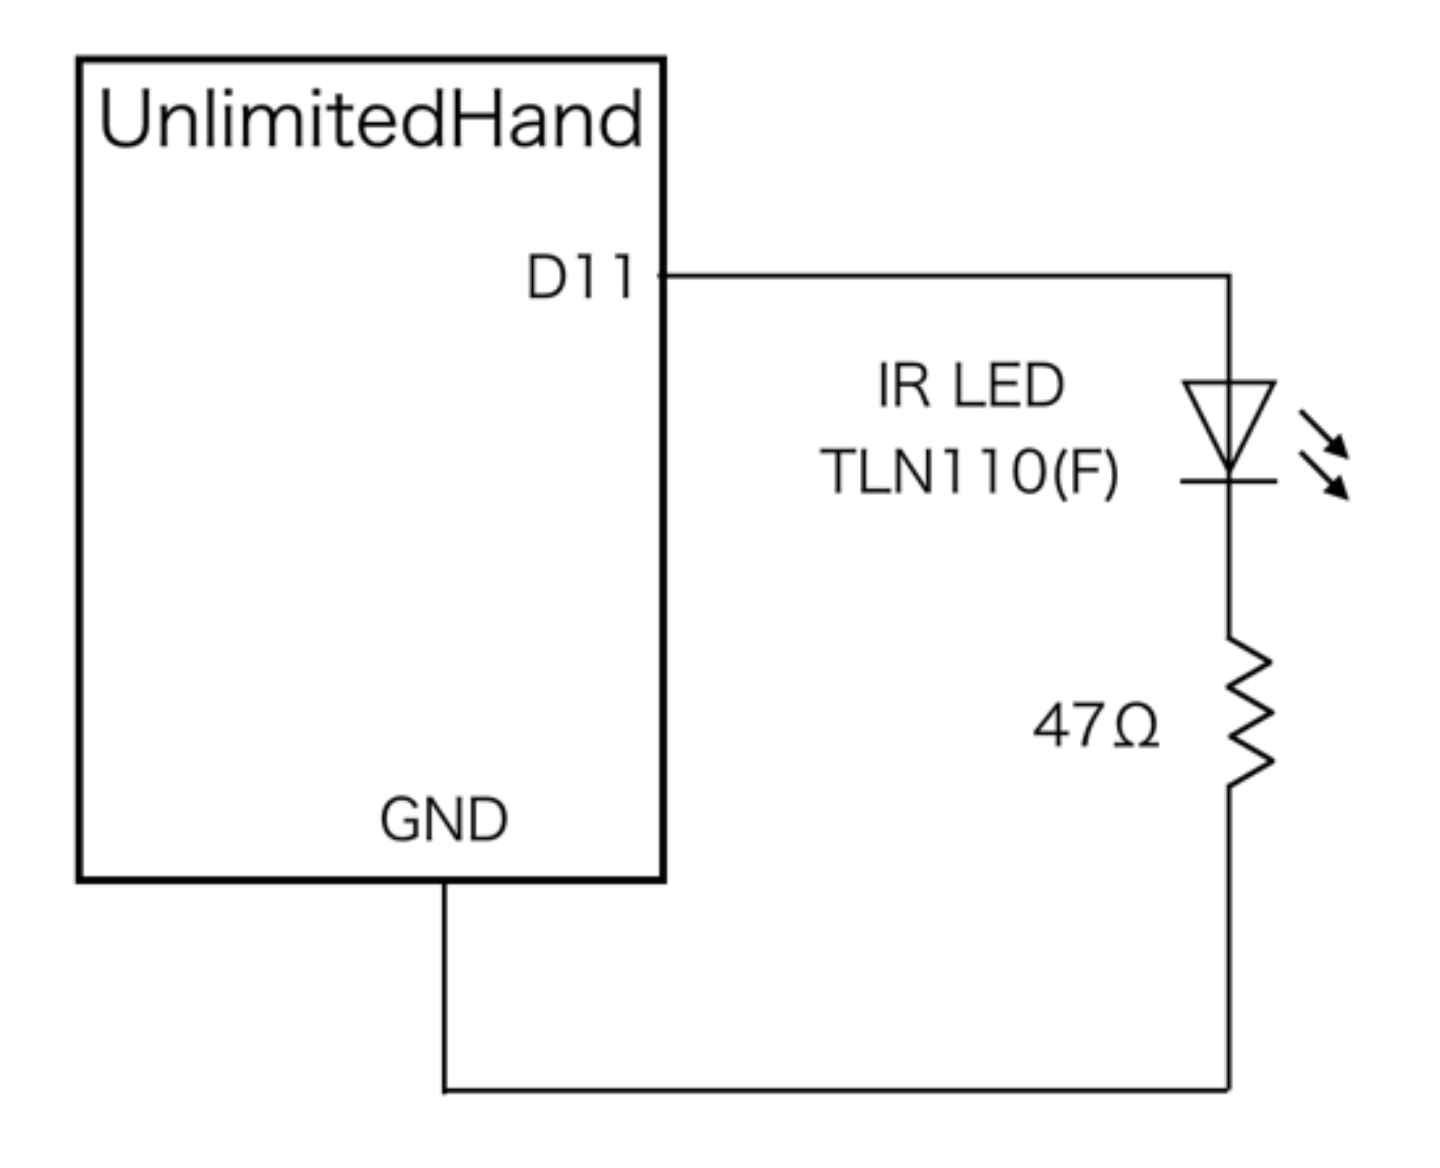 Hackable Port Unlimitedhand Developers Site Circuit On The Youtube Video Here Schematic Is Below 5 Compiling Program